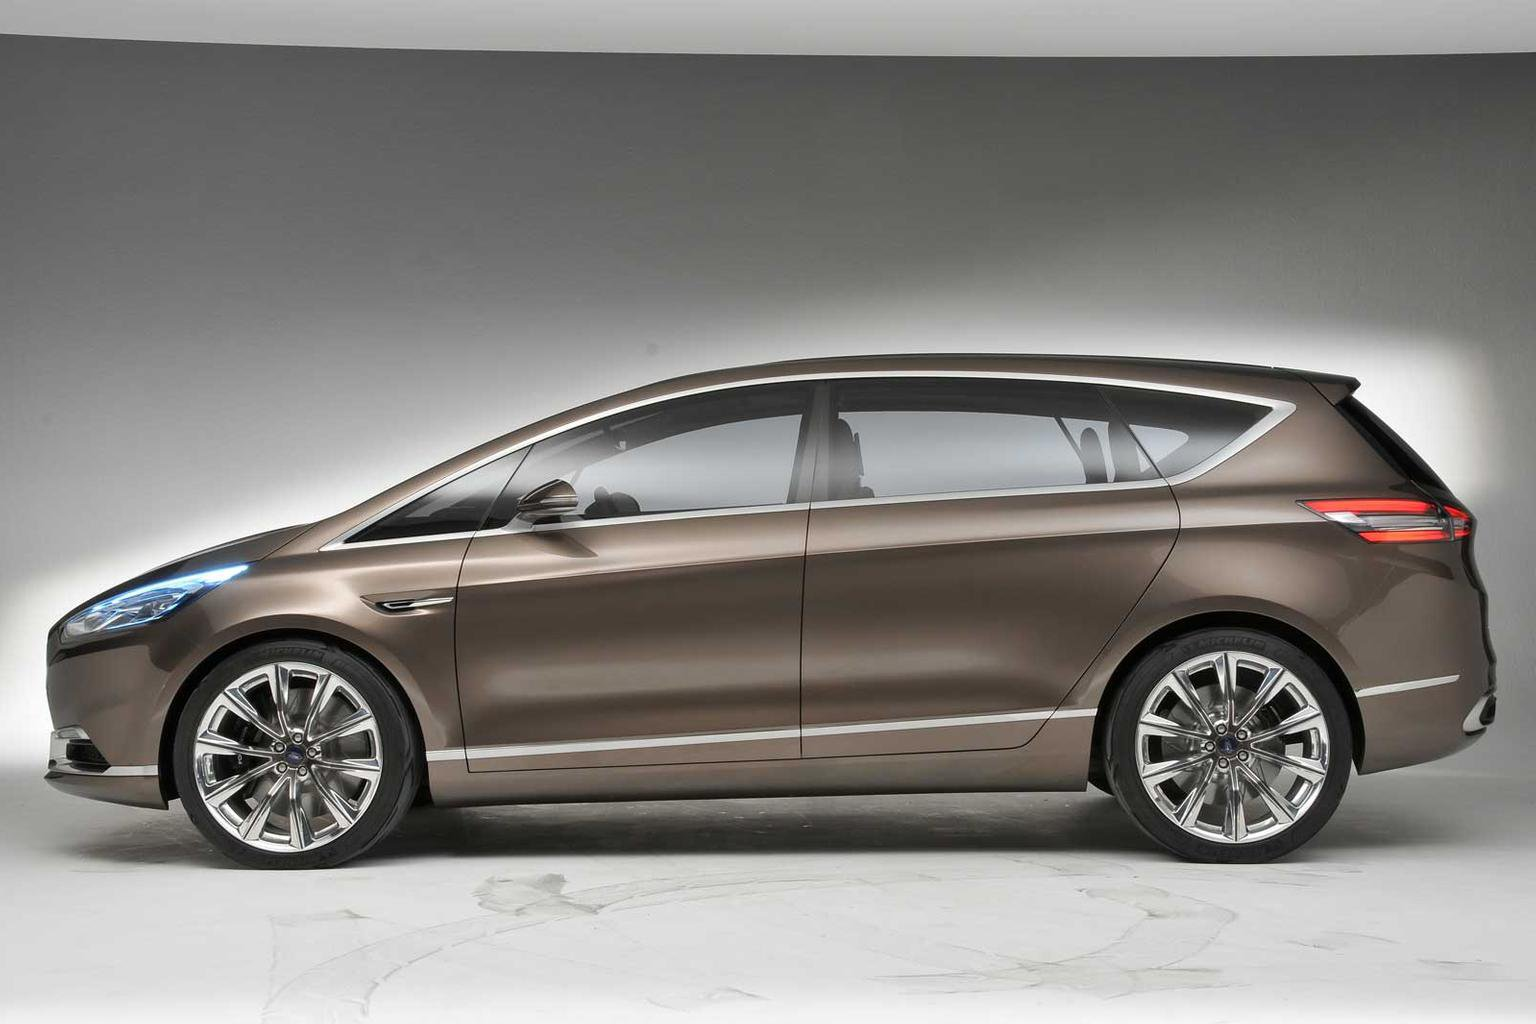 2014 Ford S-Max revealed